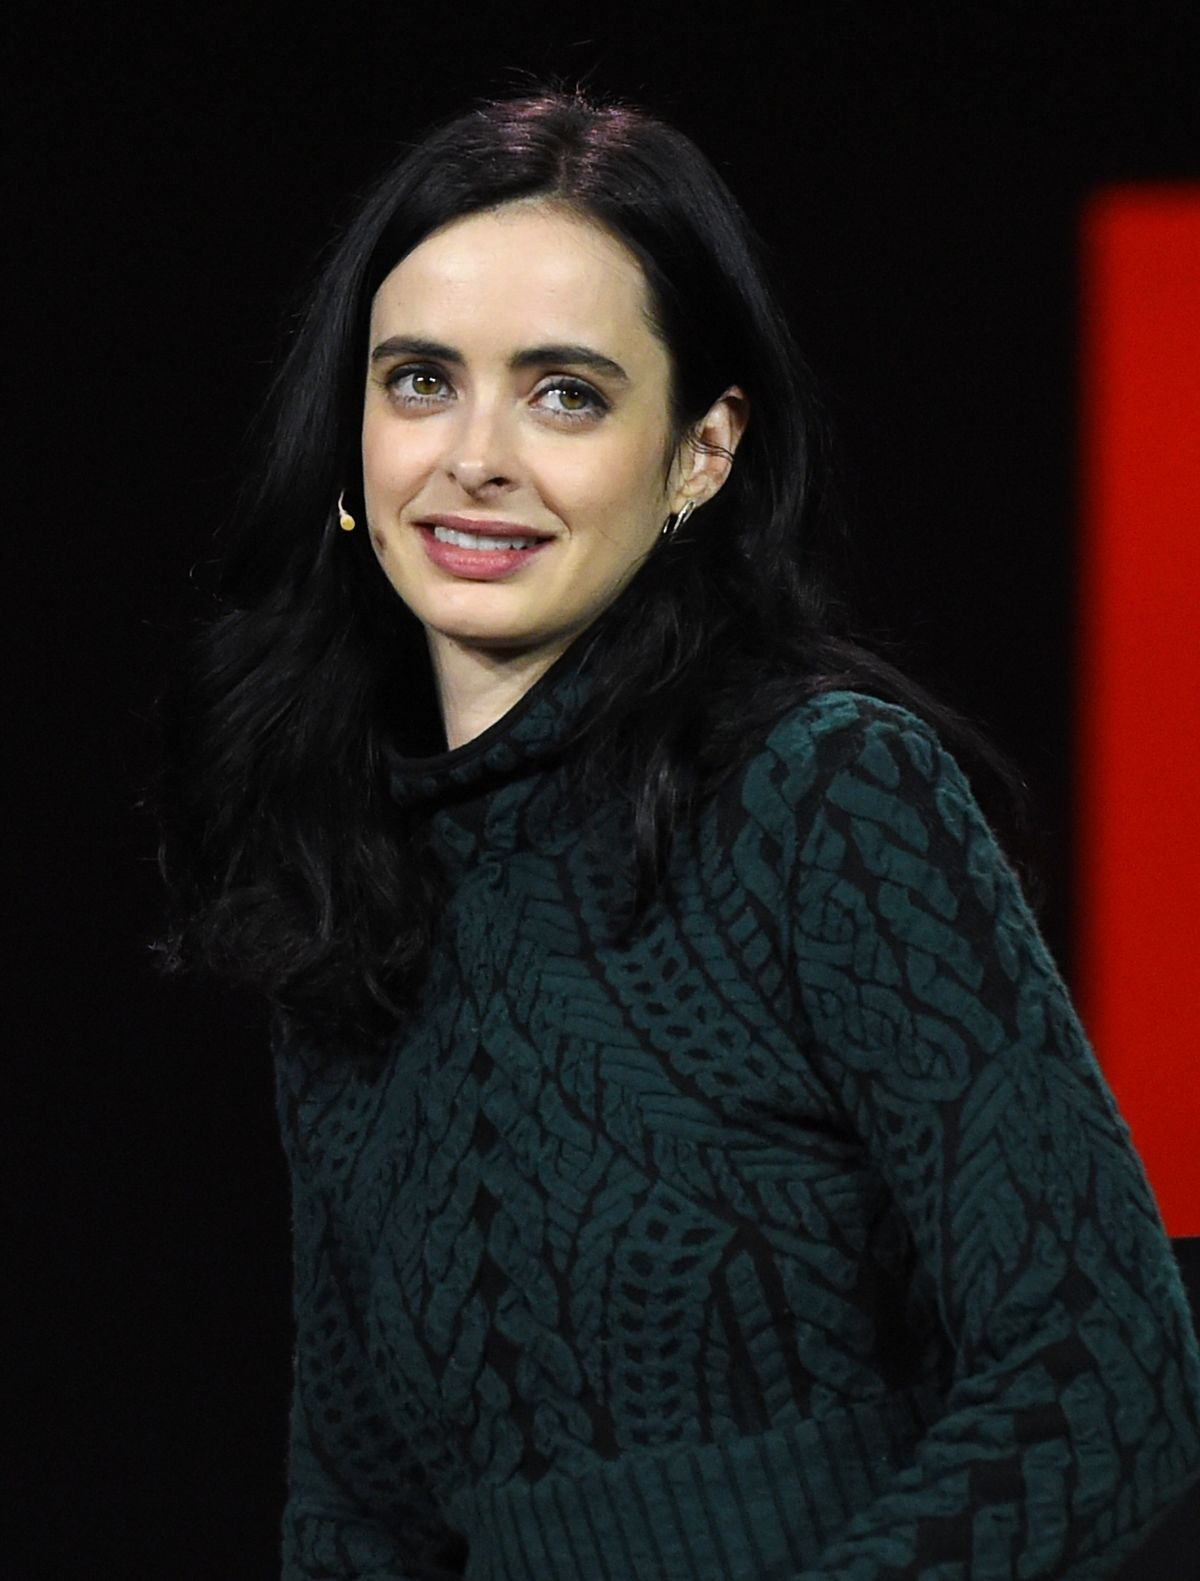 KRYSTEN RITTER at CES 2016 Netflix Panel in Las Vegas 01/06/2016 ...